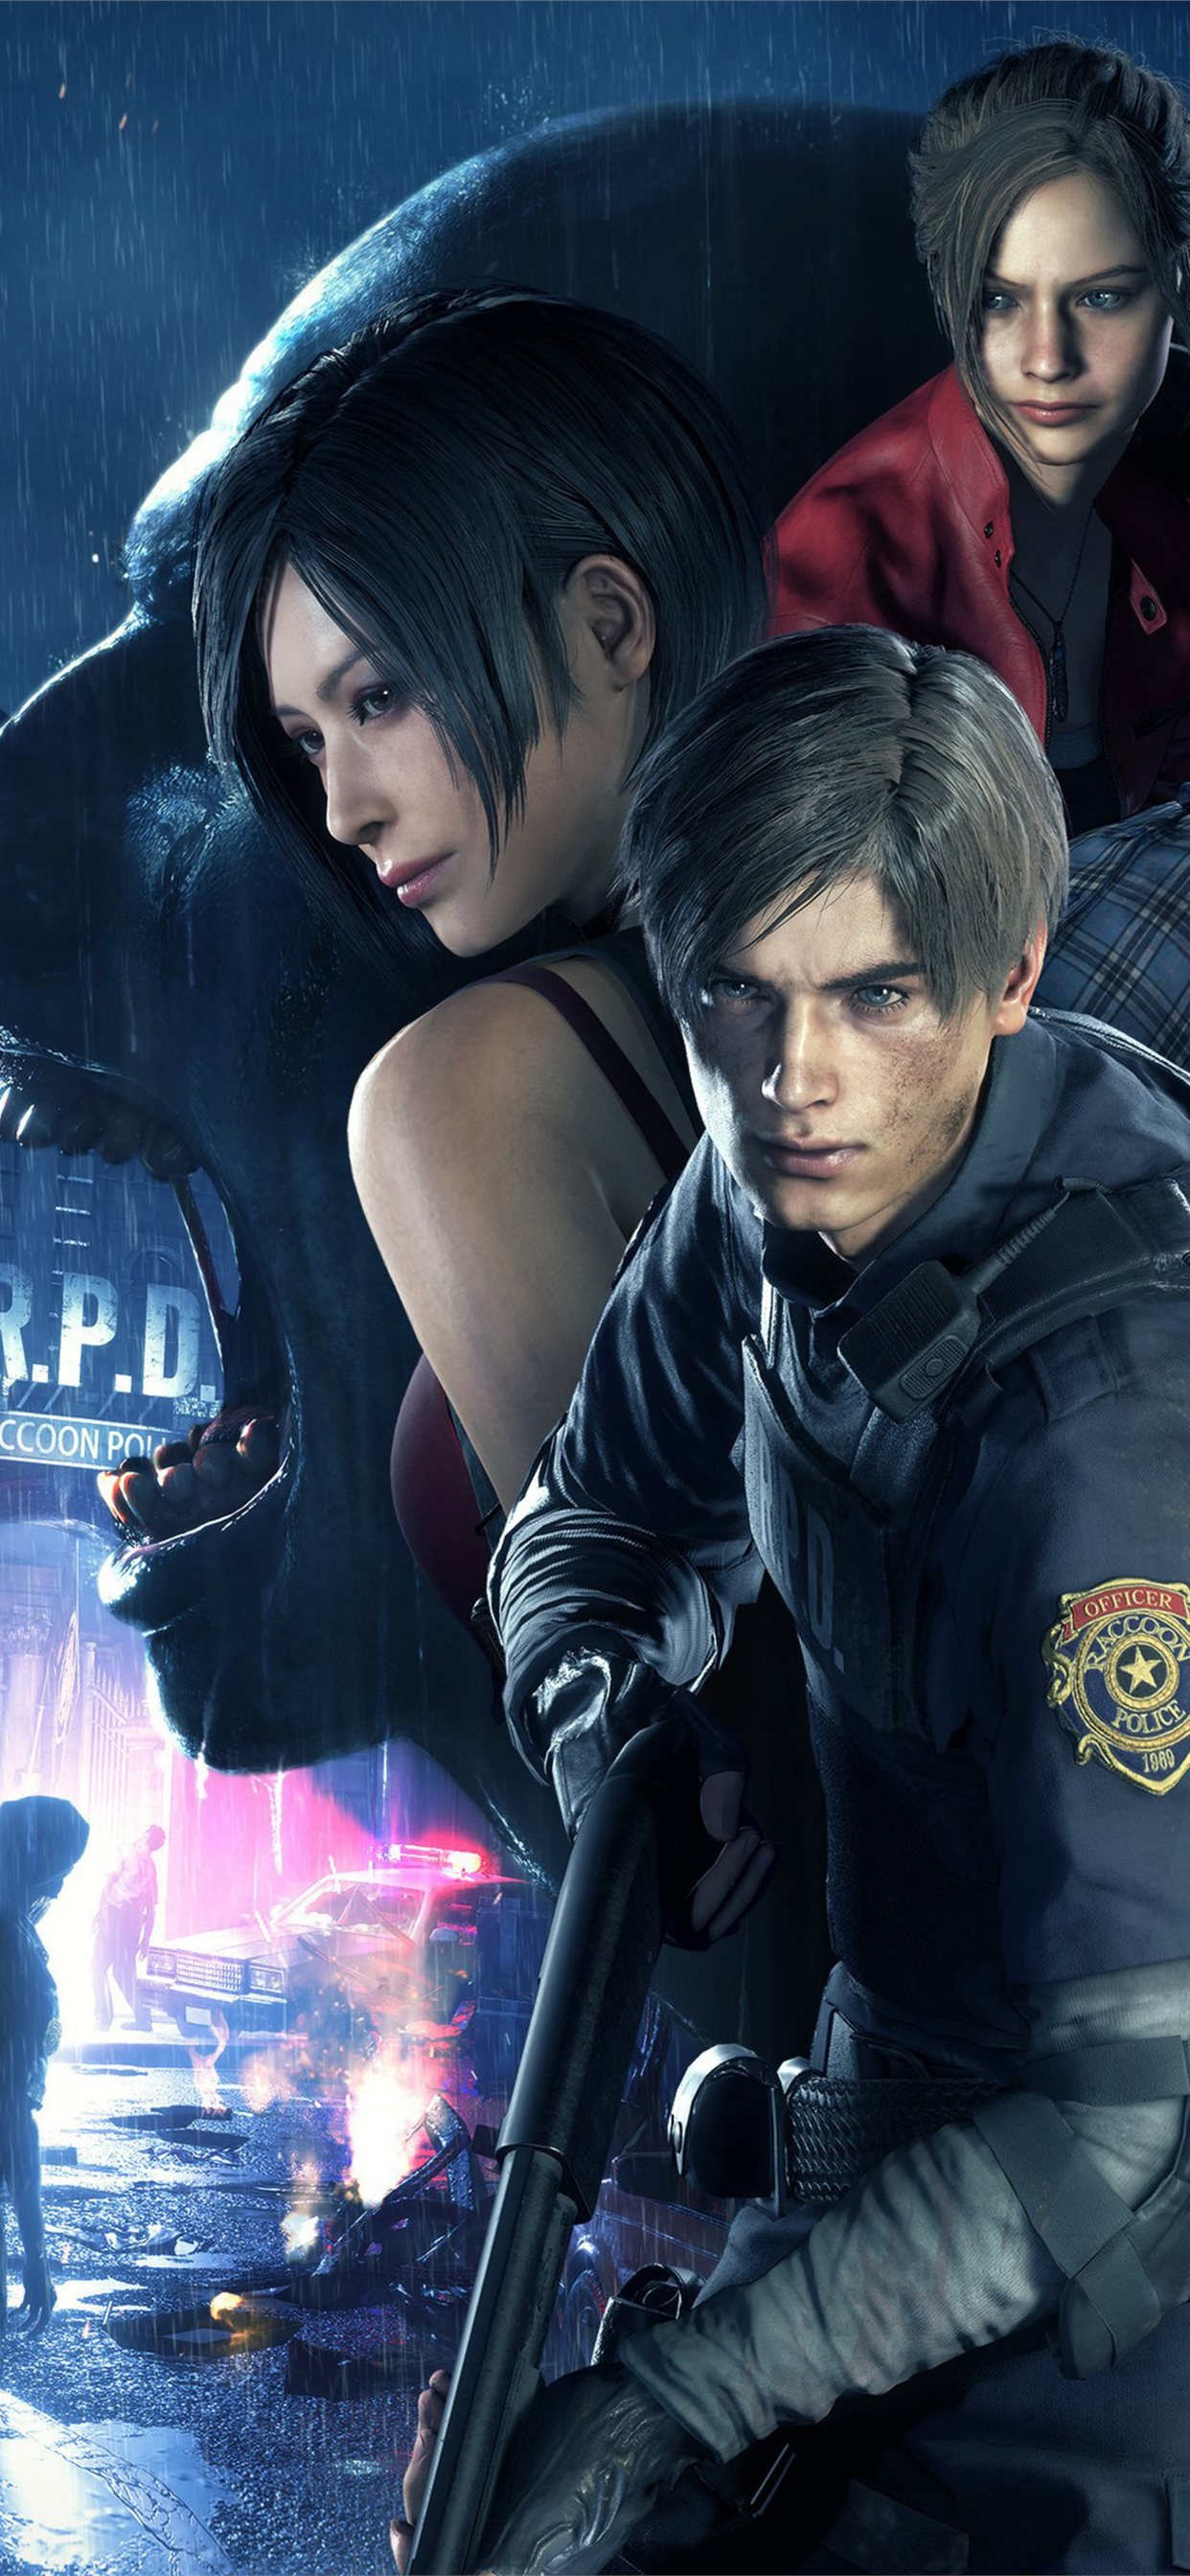 Resident Evil 2 4k Iphone Wallpapers Free Download